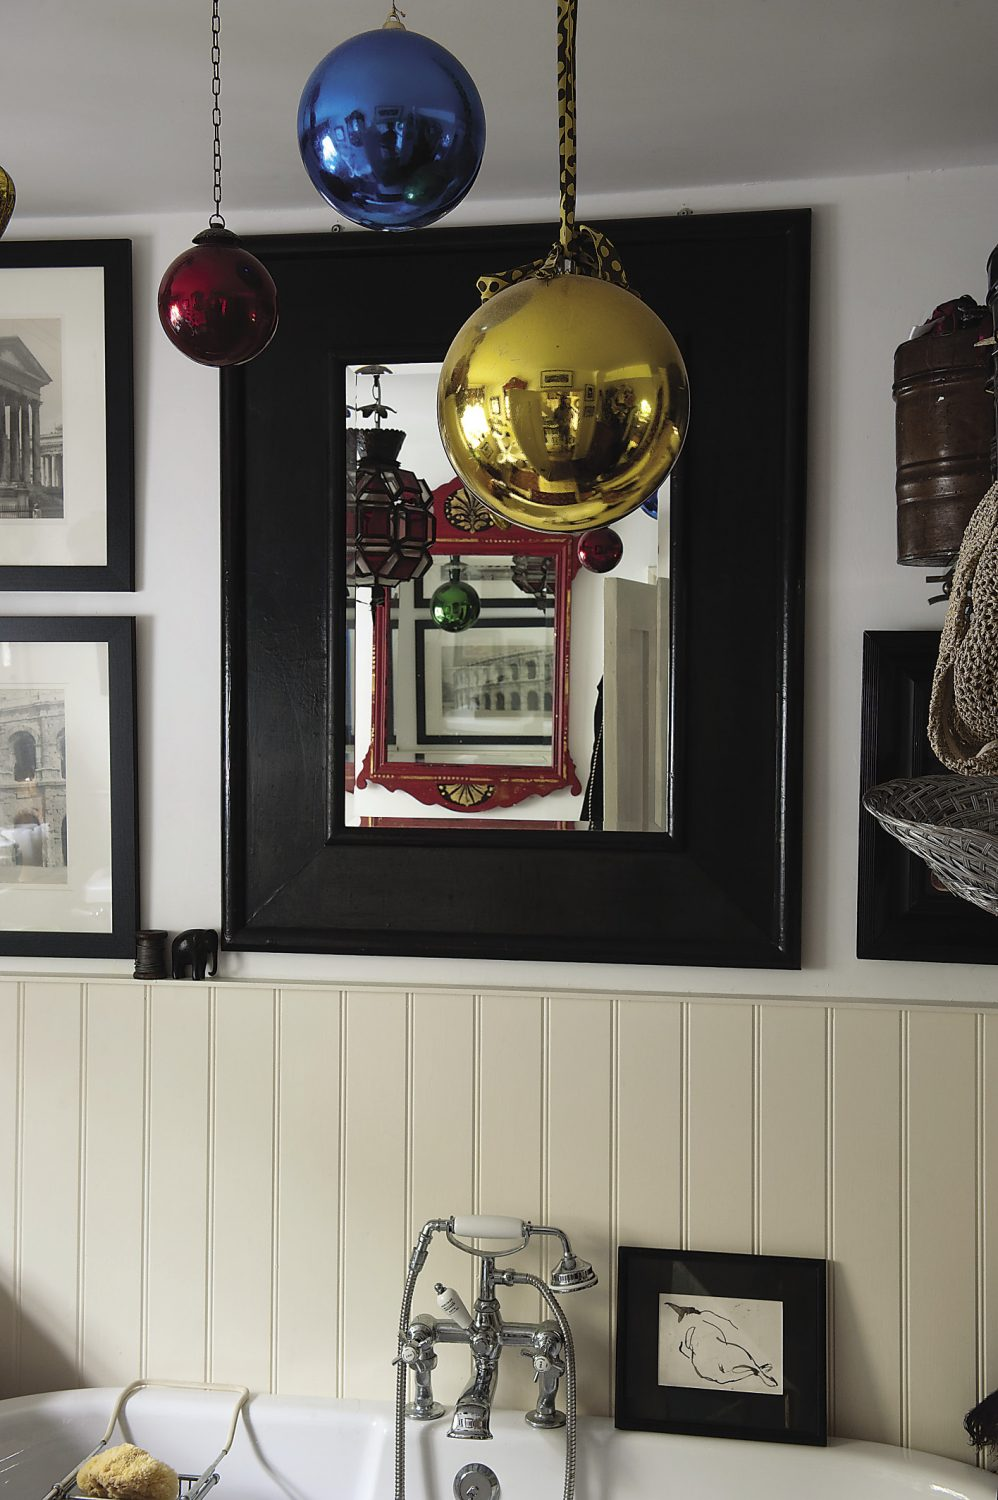 Helen has cleverly hung eyecatchingly colourful baubles above the roll-top bath in the ground-floor bathroom to disguise the 'scar' across the paintwork caused by the removal of a strip light